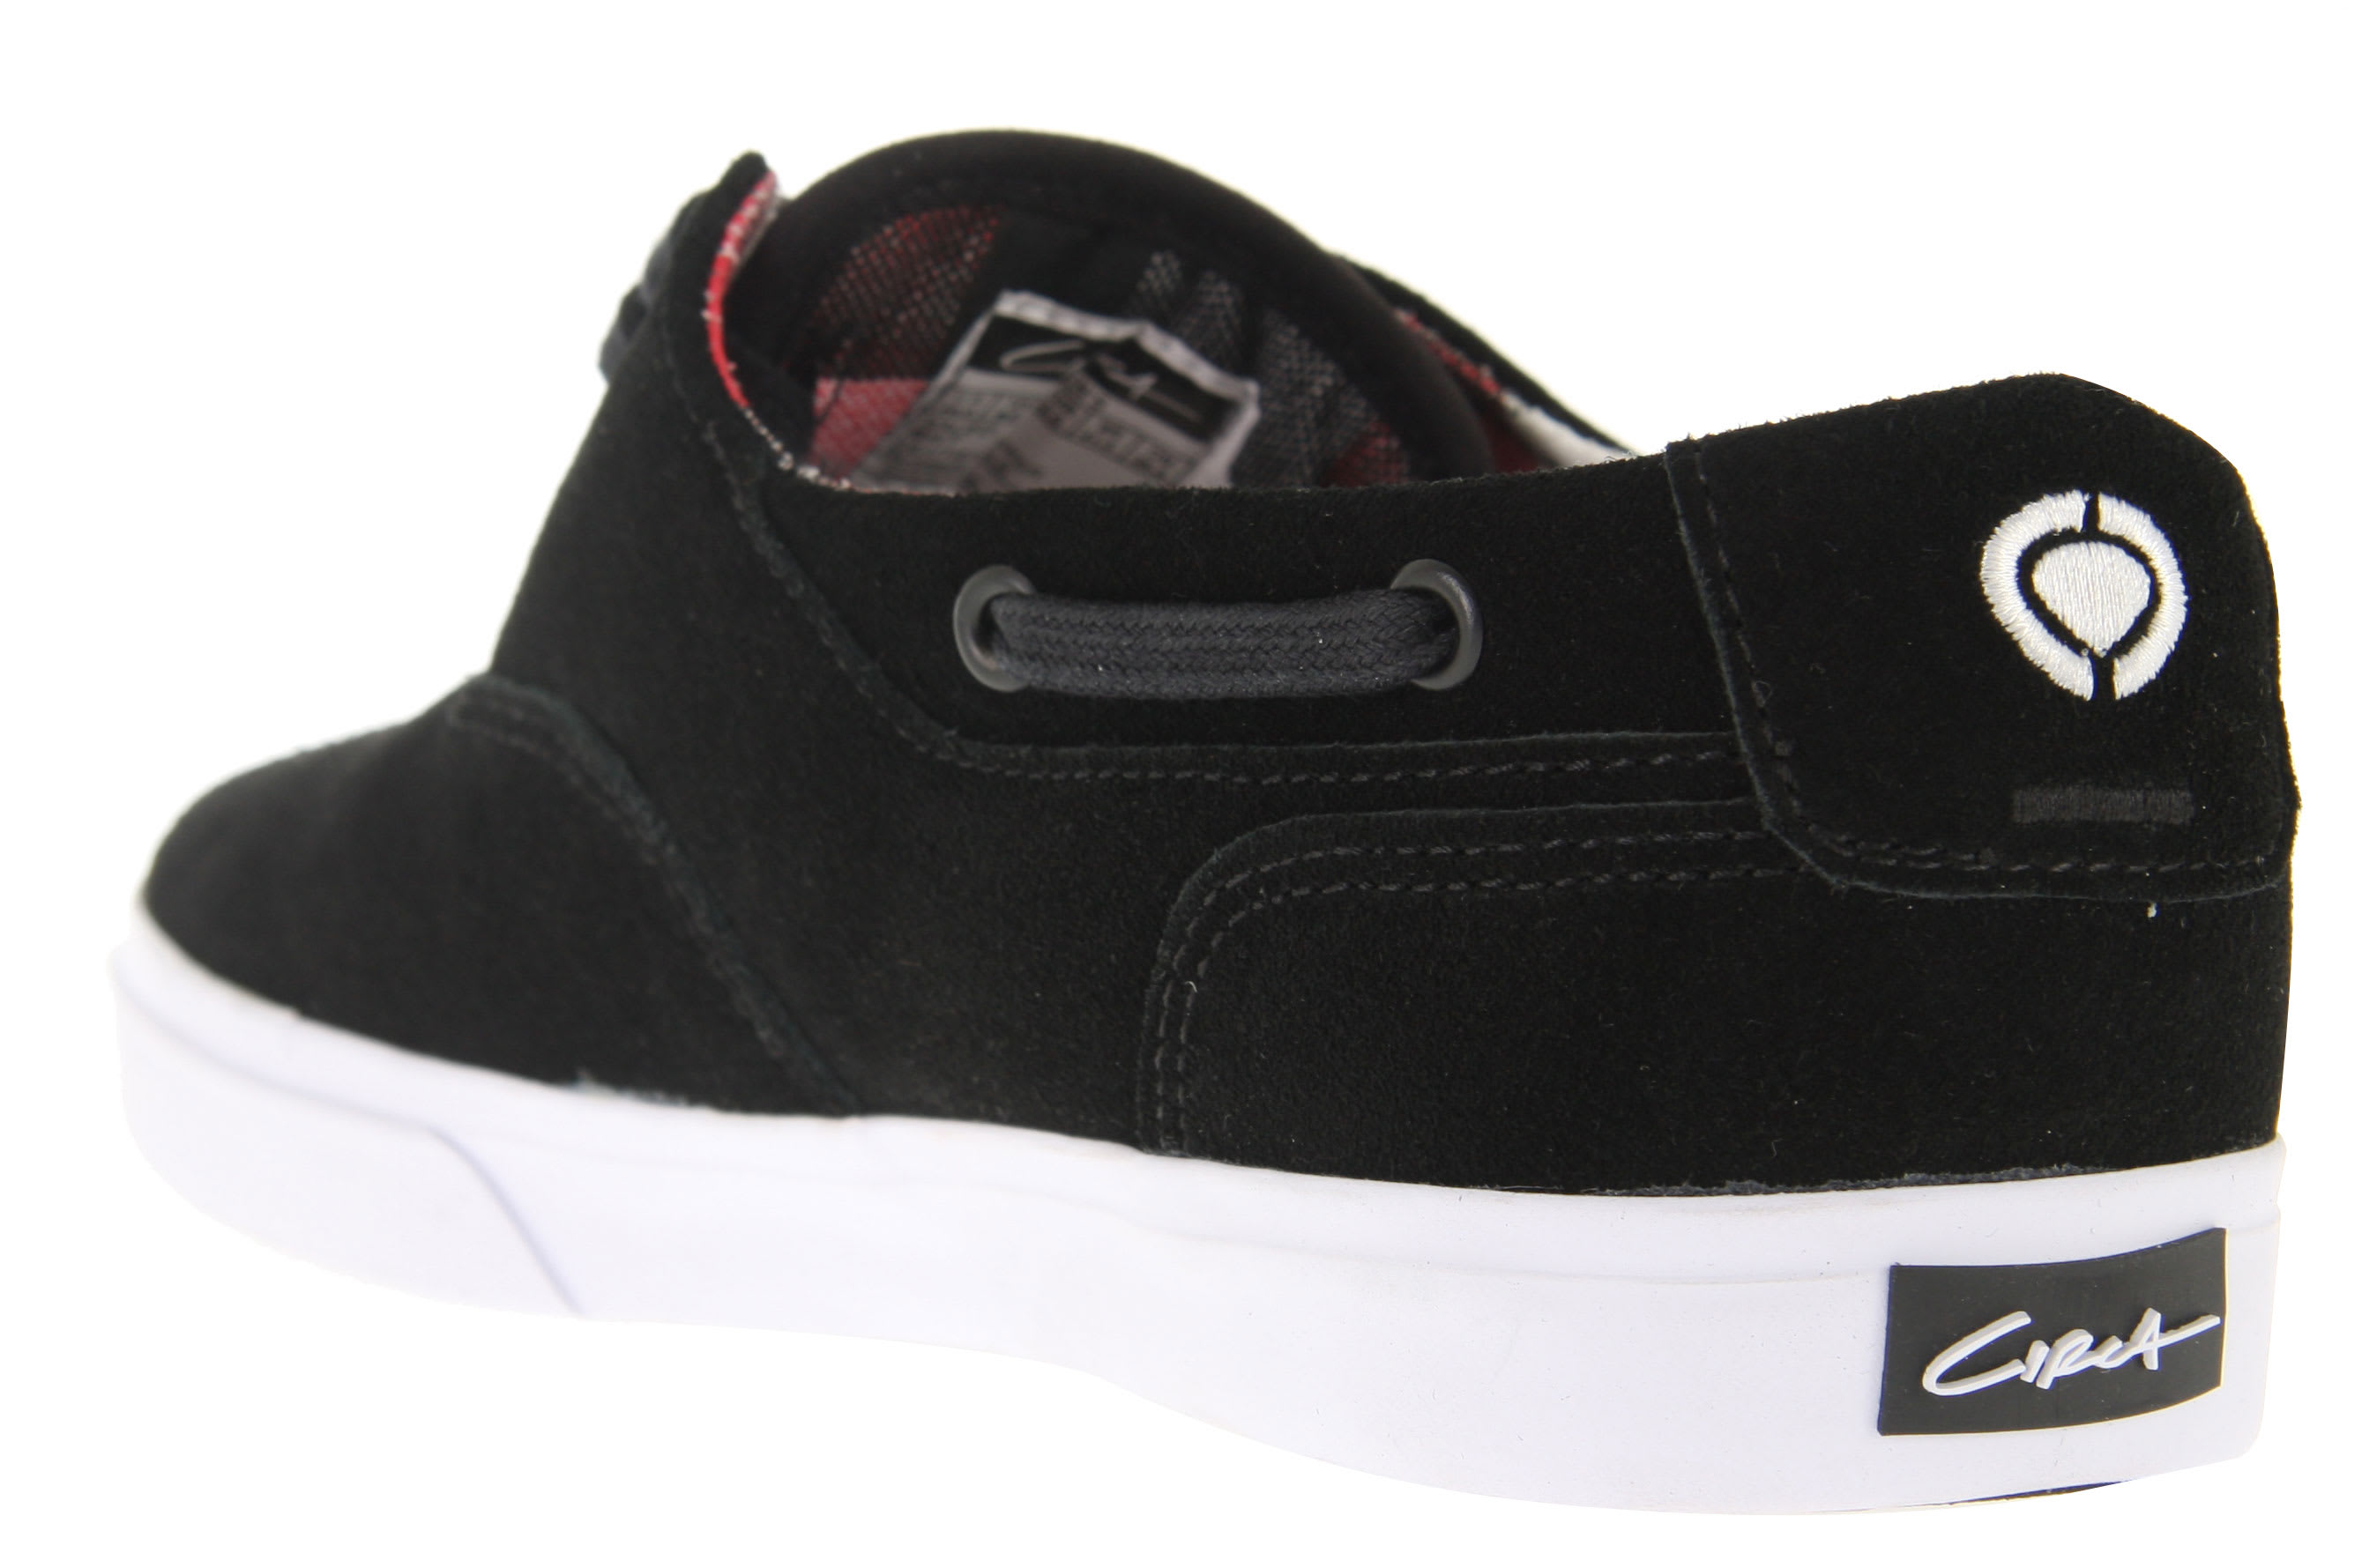 6337281dde59 Circa Valeo Skate Shoes - thumbnail 2